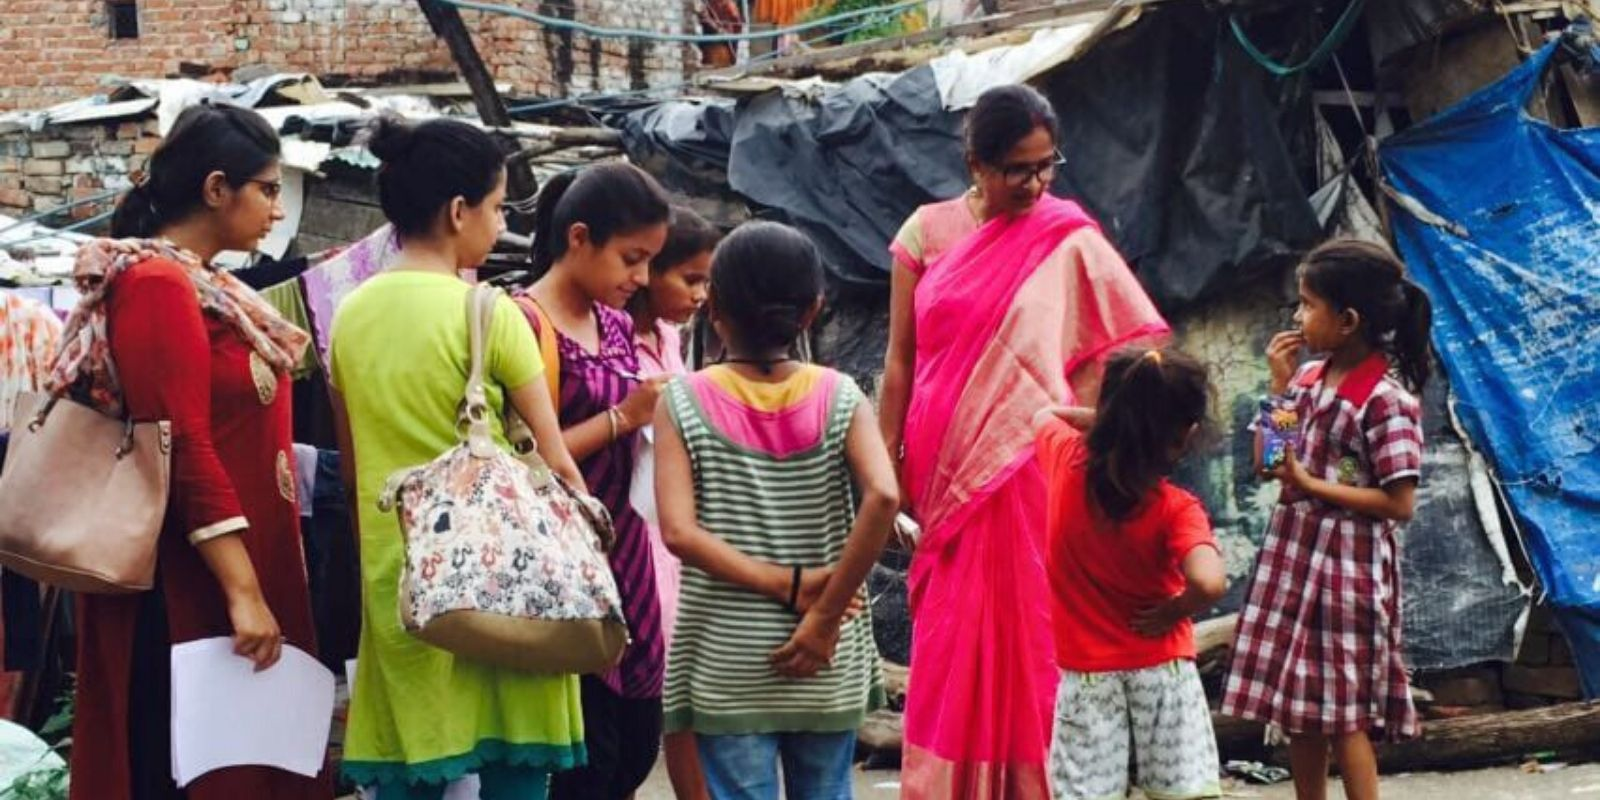 Working on Children Education and Protection from Substance Abuse in Todapur Slums, New Delhi